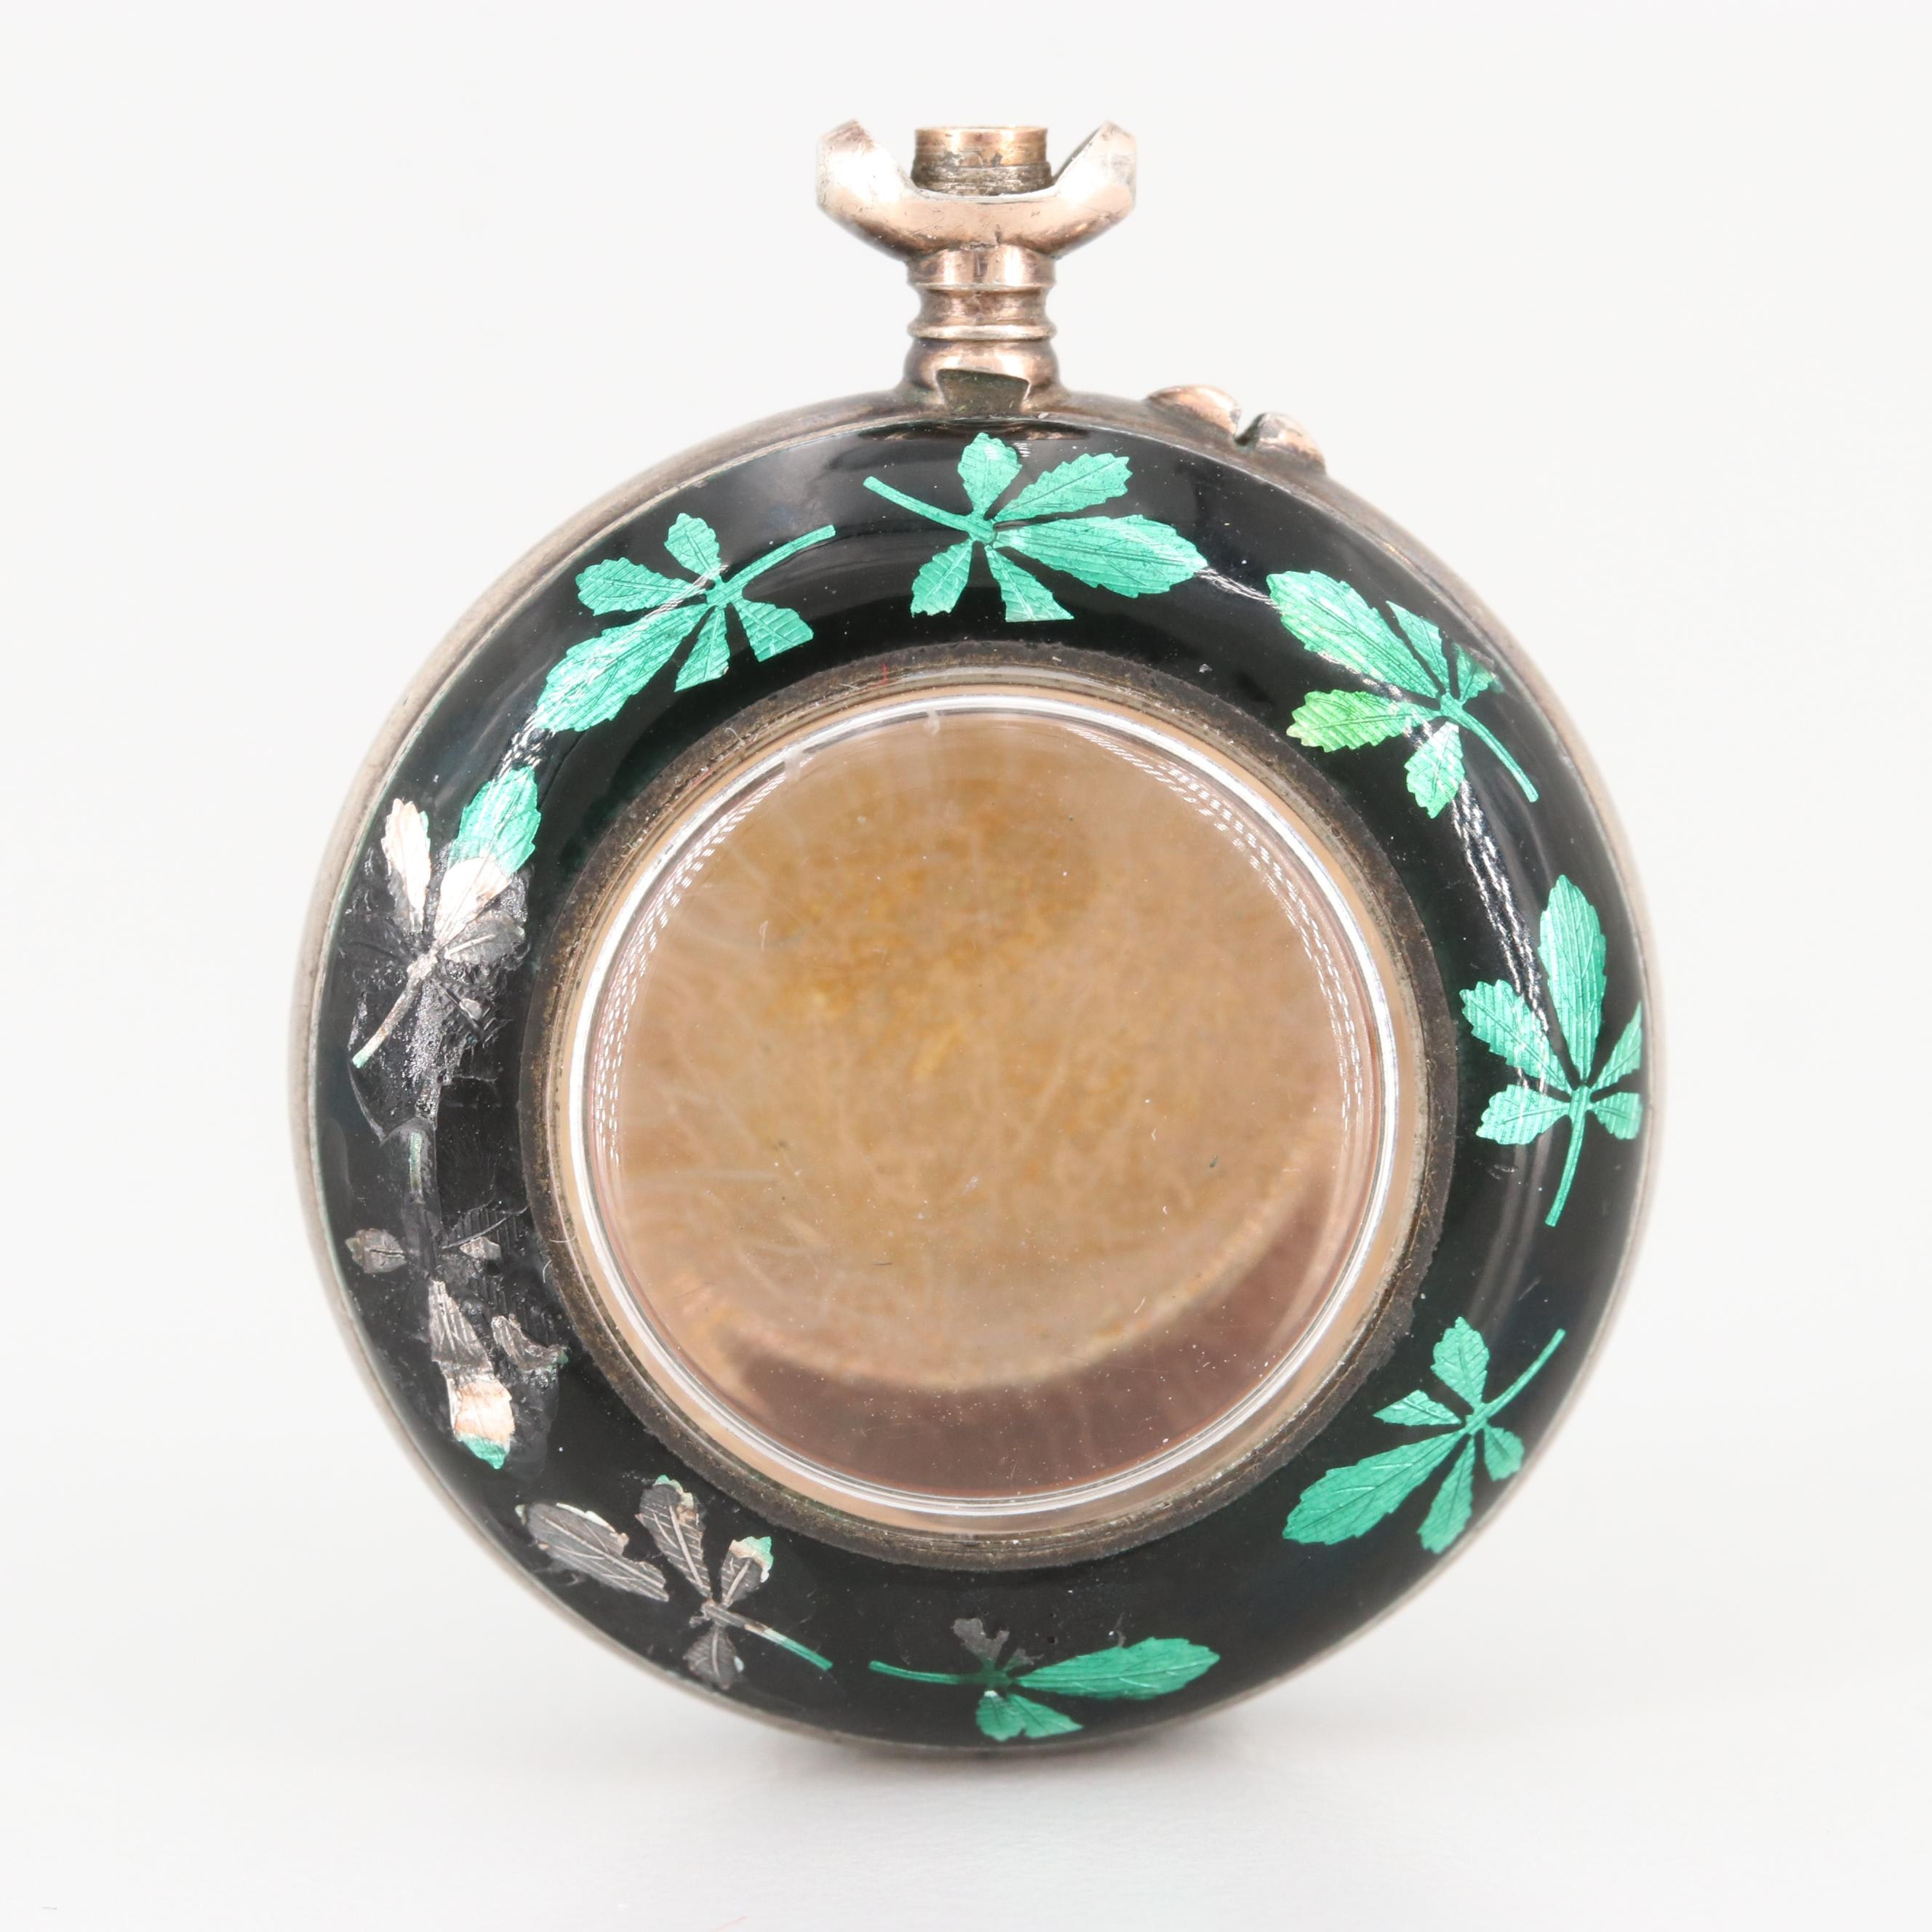 Antique 800 Silver Enameled Pocket Watch Case with Gold Wash Details